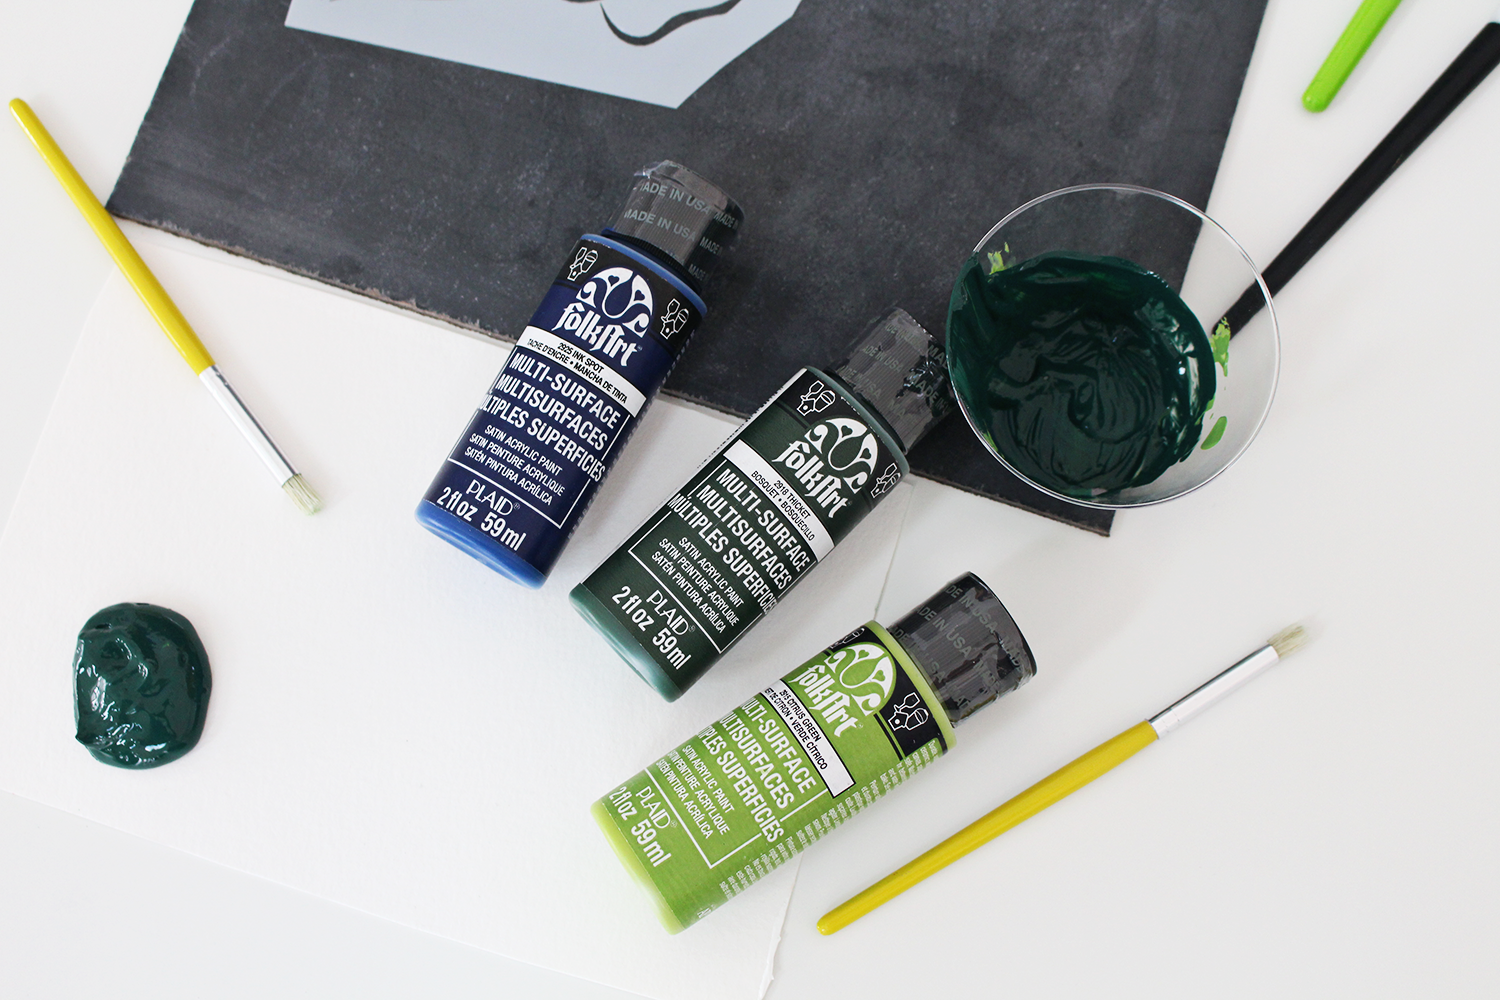 Folk Art makes the most beautiful paints for stenciling